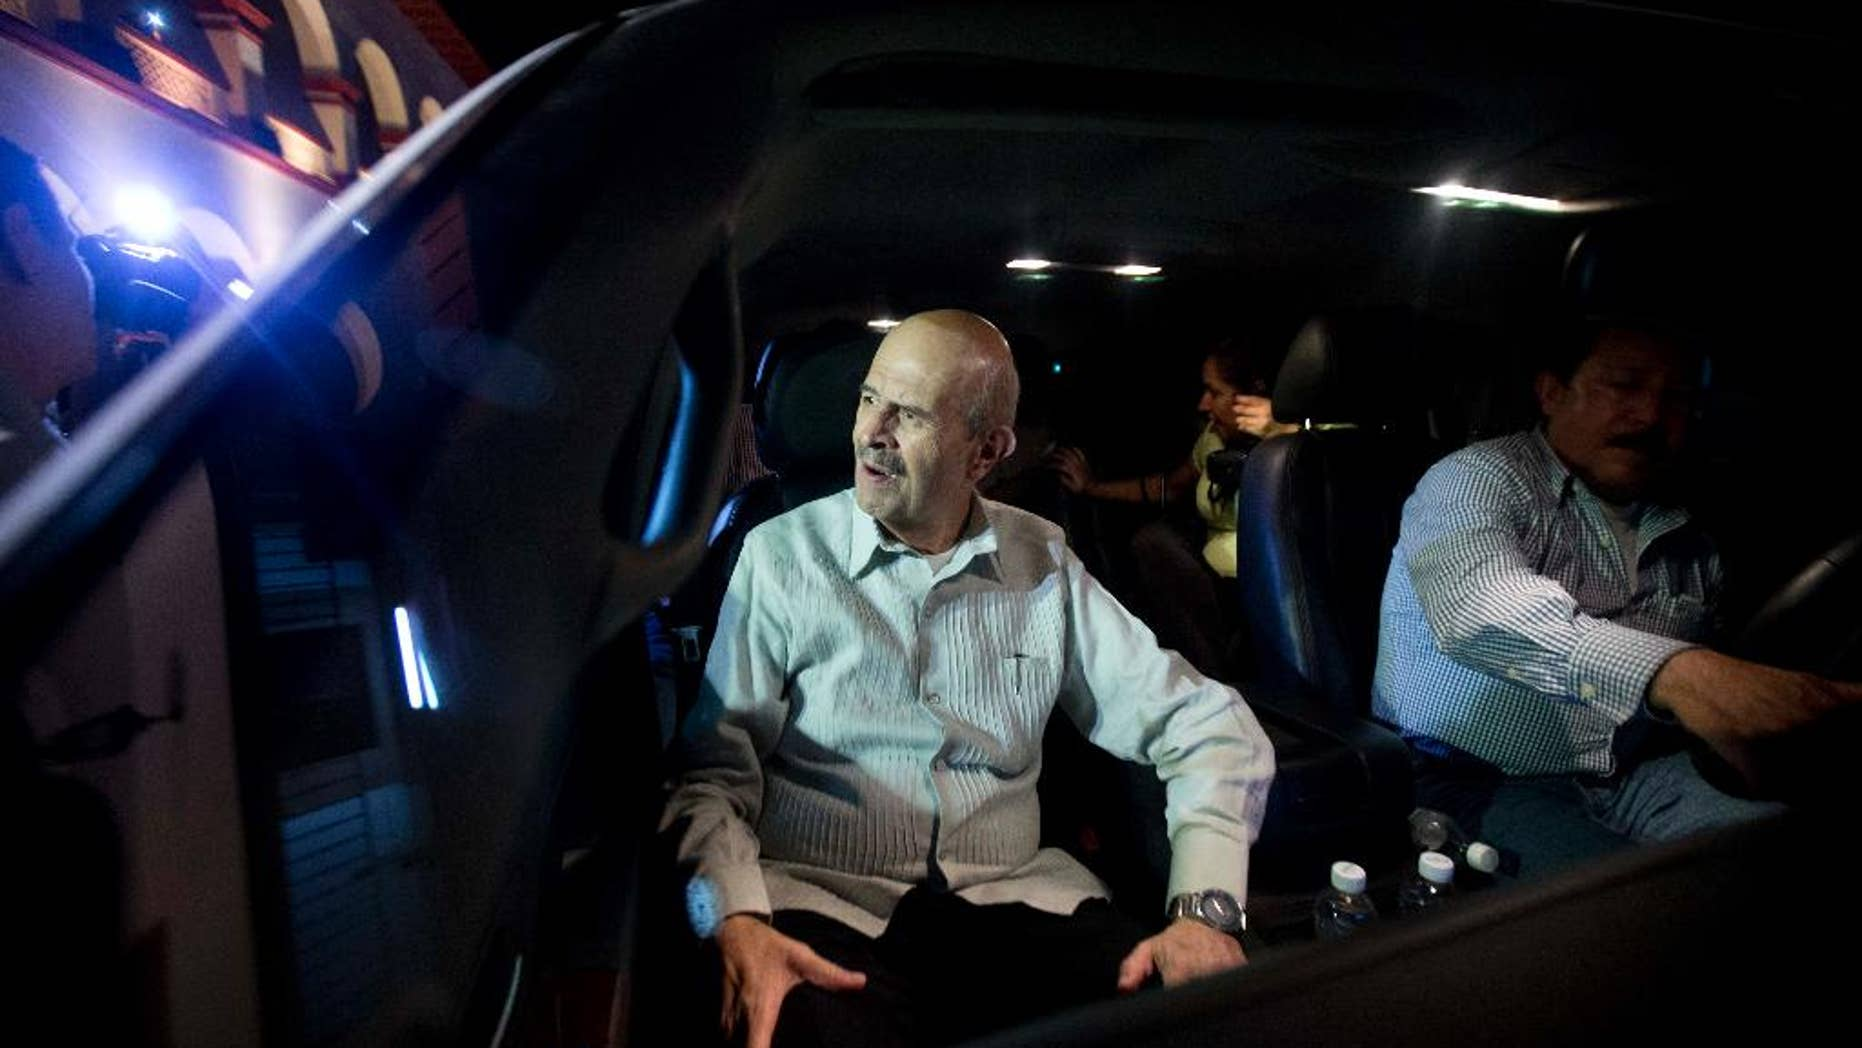 FILE - In this Jan. 14, 2014 file photo, Michoacan state Gov. Fausto Vallejo is driven away after attending a meeting at City Hall in Apatzingan, Mexico. Vallejo presented his resignation to Mexico's President Enrique Pena Nieto on Wednesday, June 18, 2014, citing health reasons. (AP Photo/Eduardo Verdugo, File)